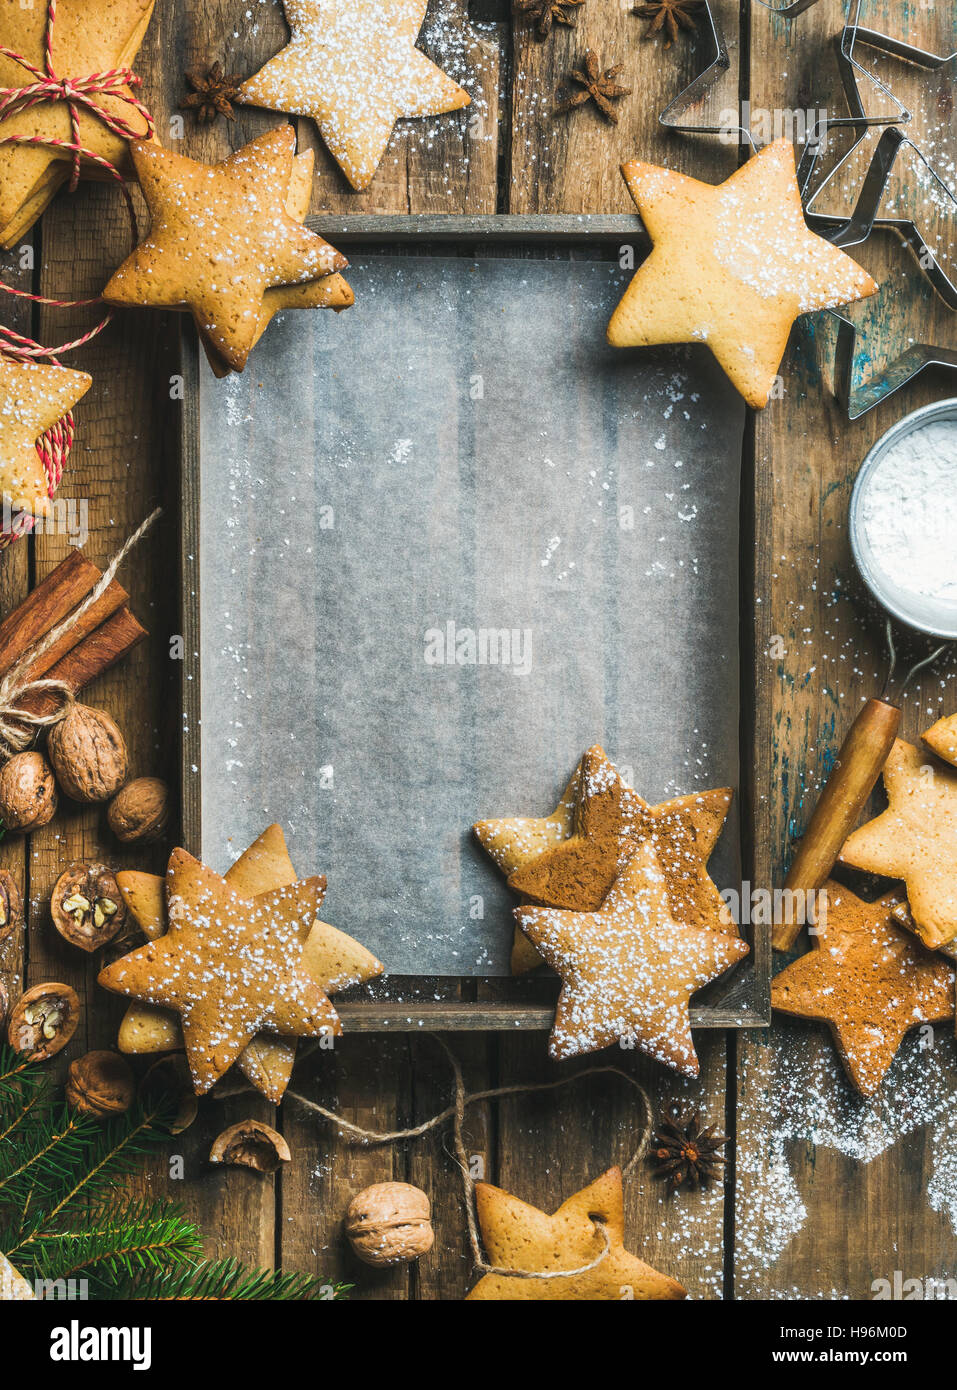 New Year background, wooden tray with baking paper in center - Stock Image